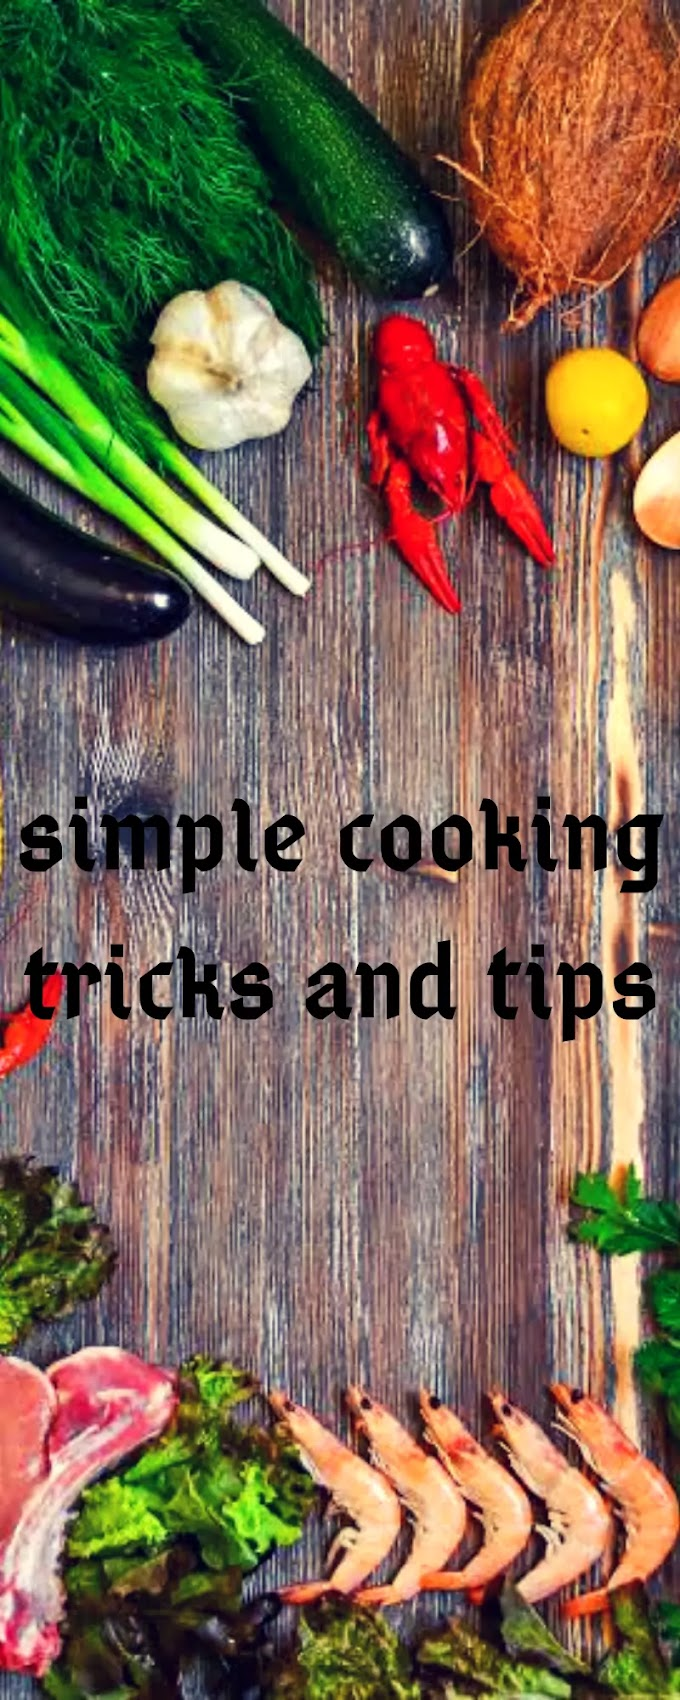 20 best of the pro cooking tricks and tips for beginners|Everyone should know